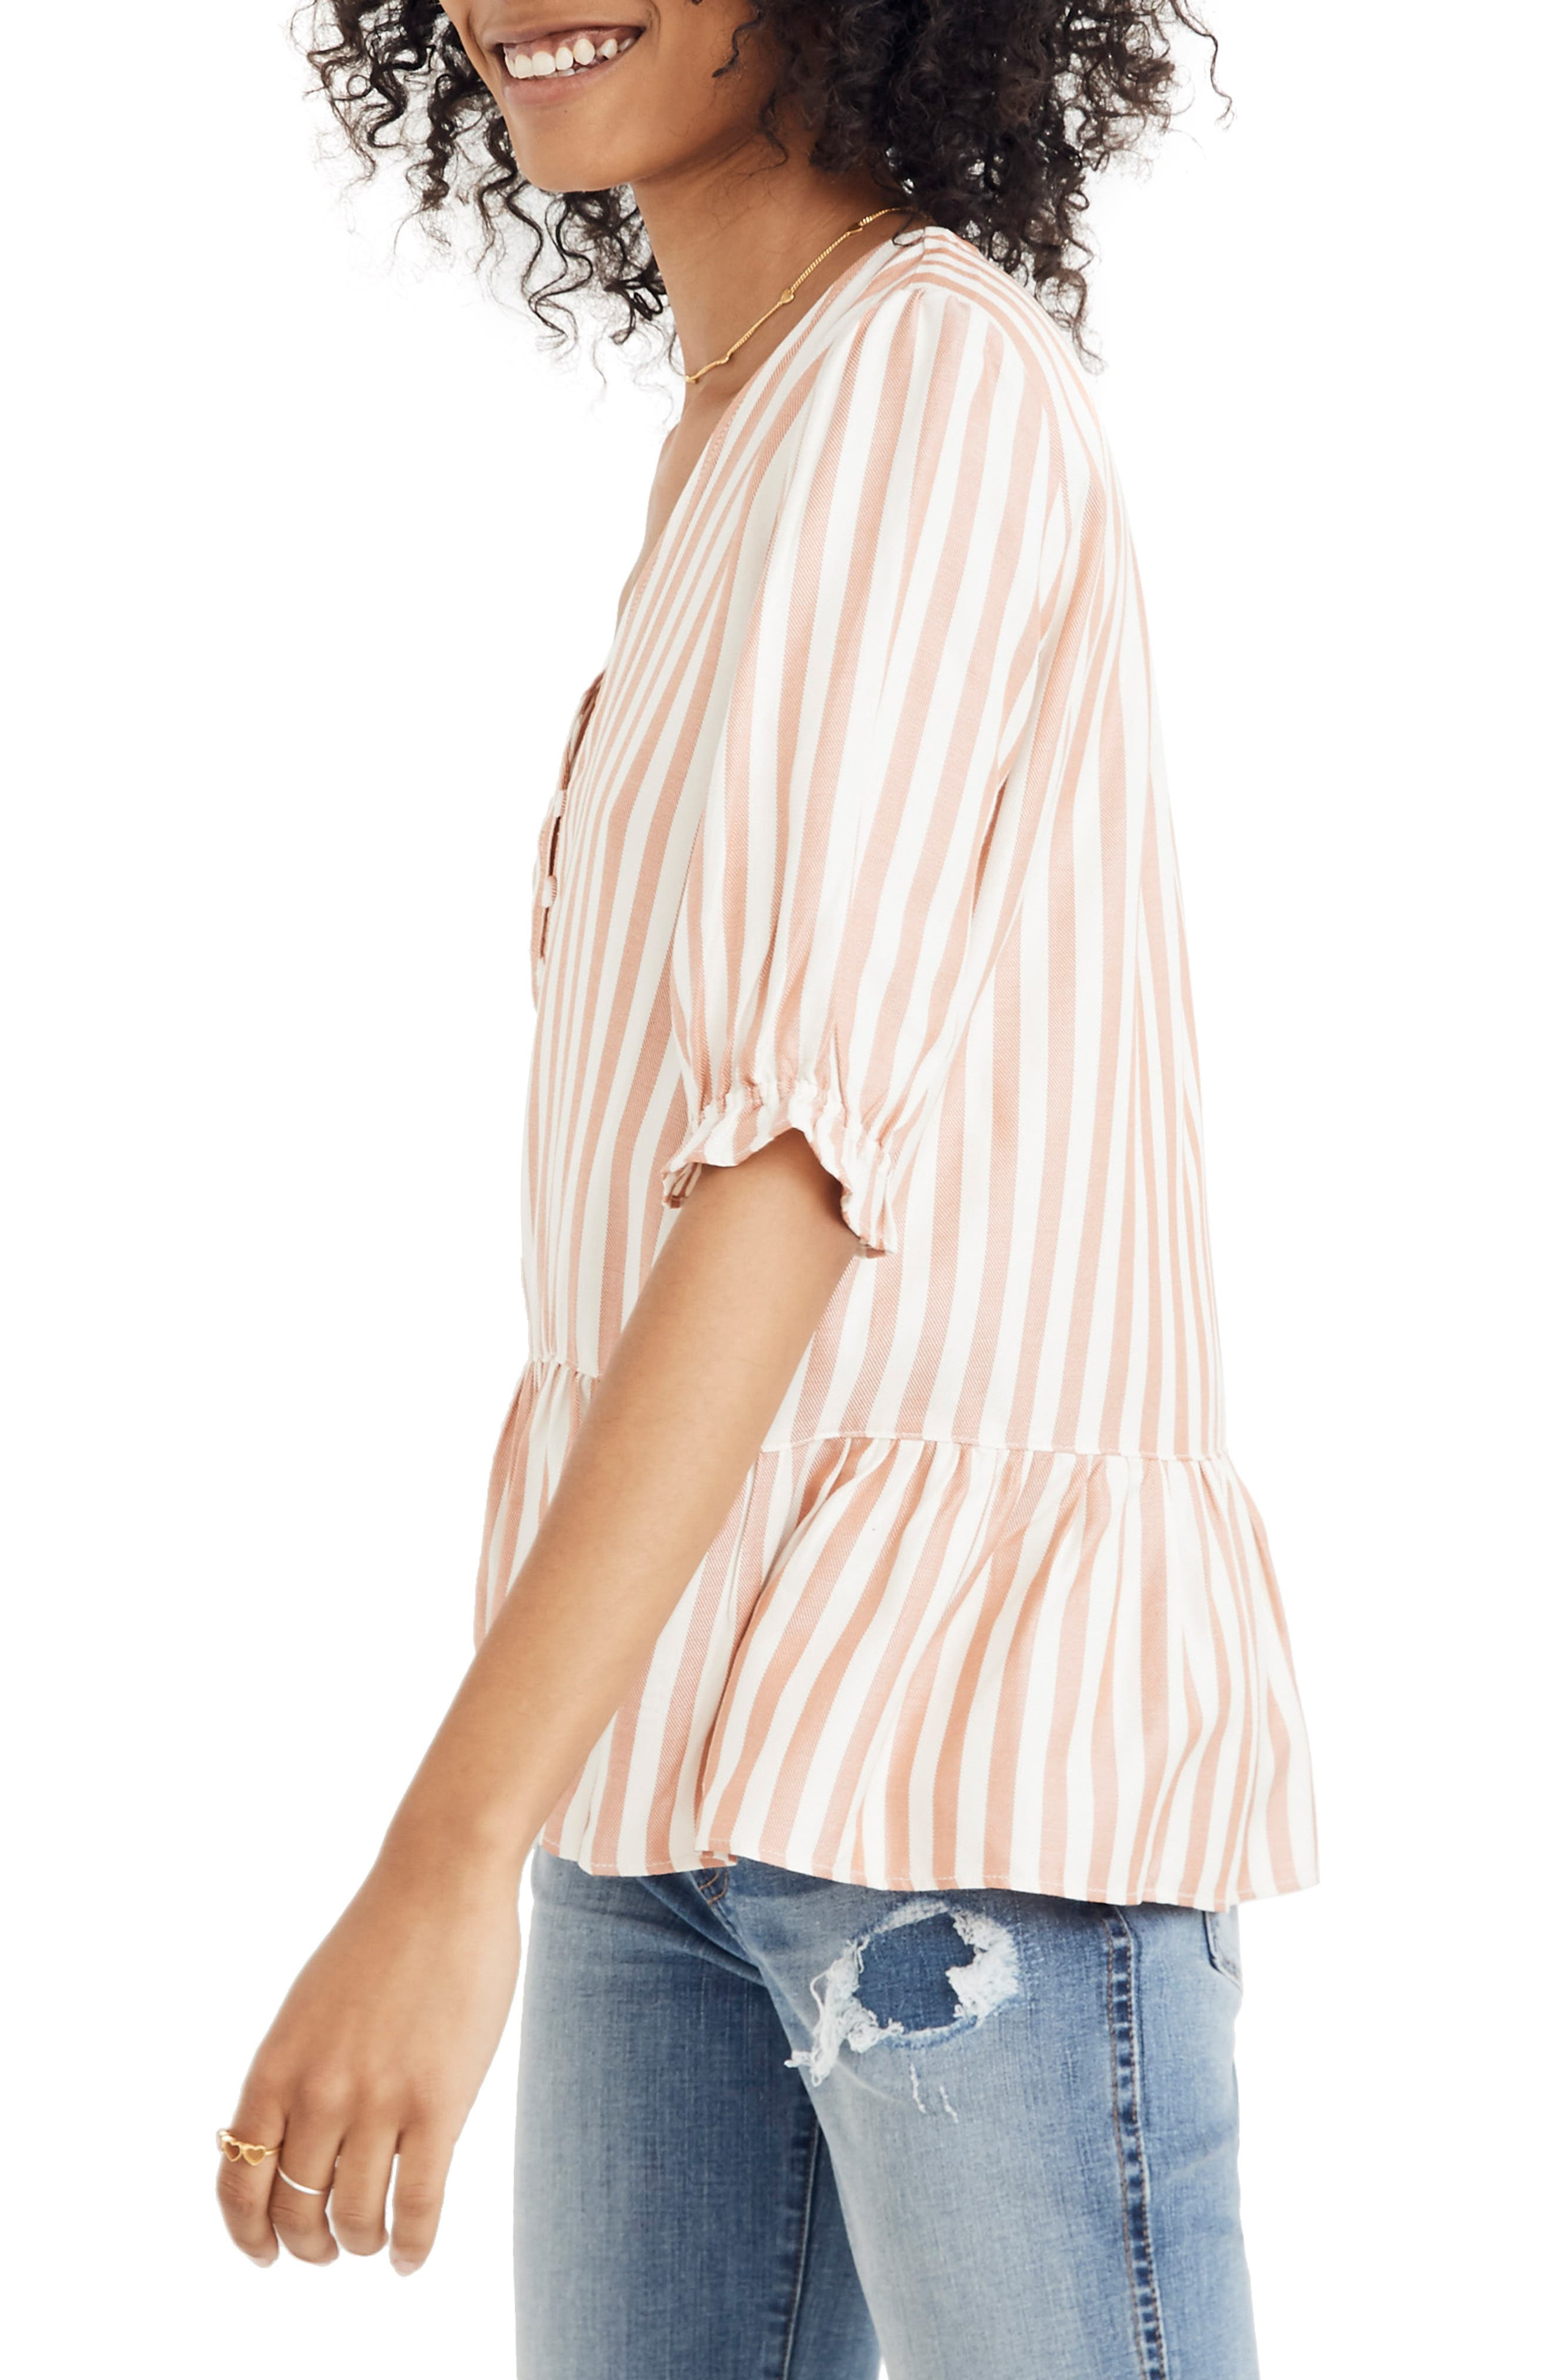 MADEWELL,                             Courtyard Ruffle Hem Top,                             Alternate thumbnail 3, color,                             STRIPE